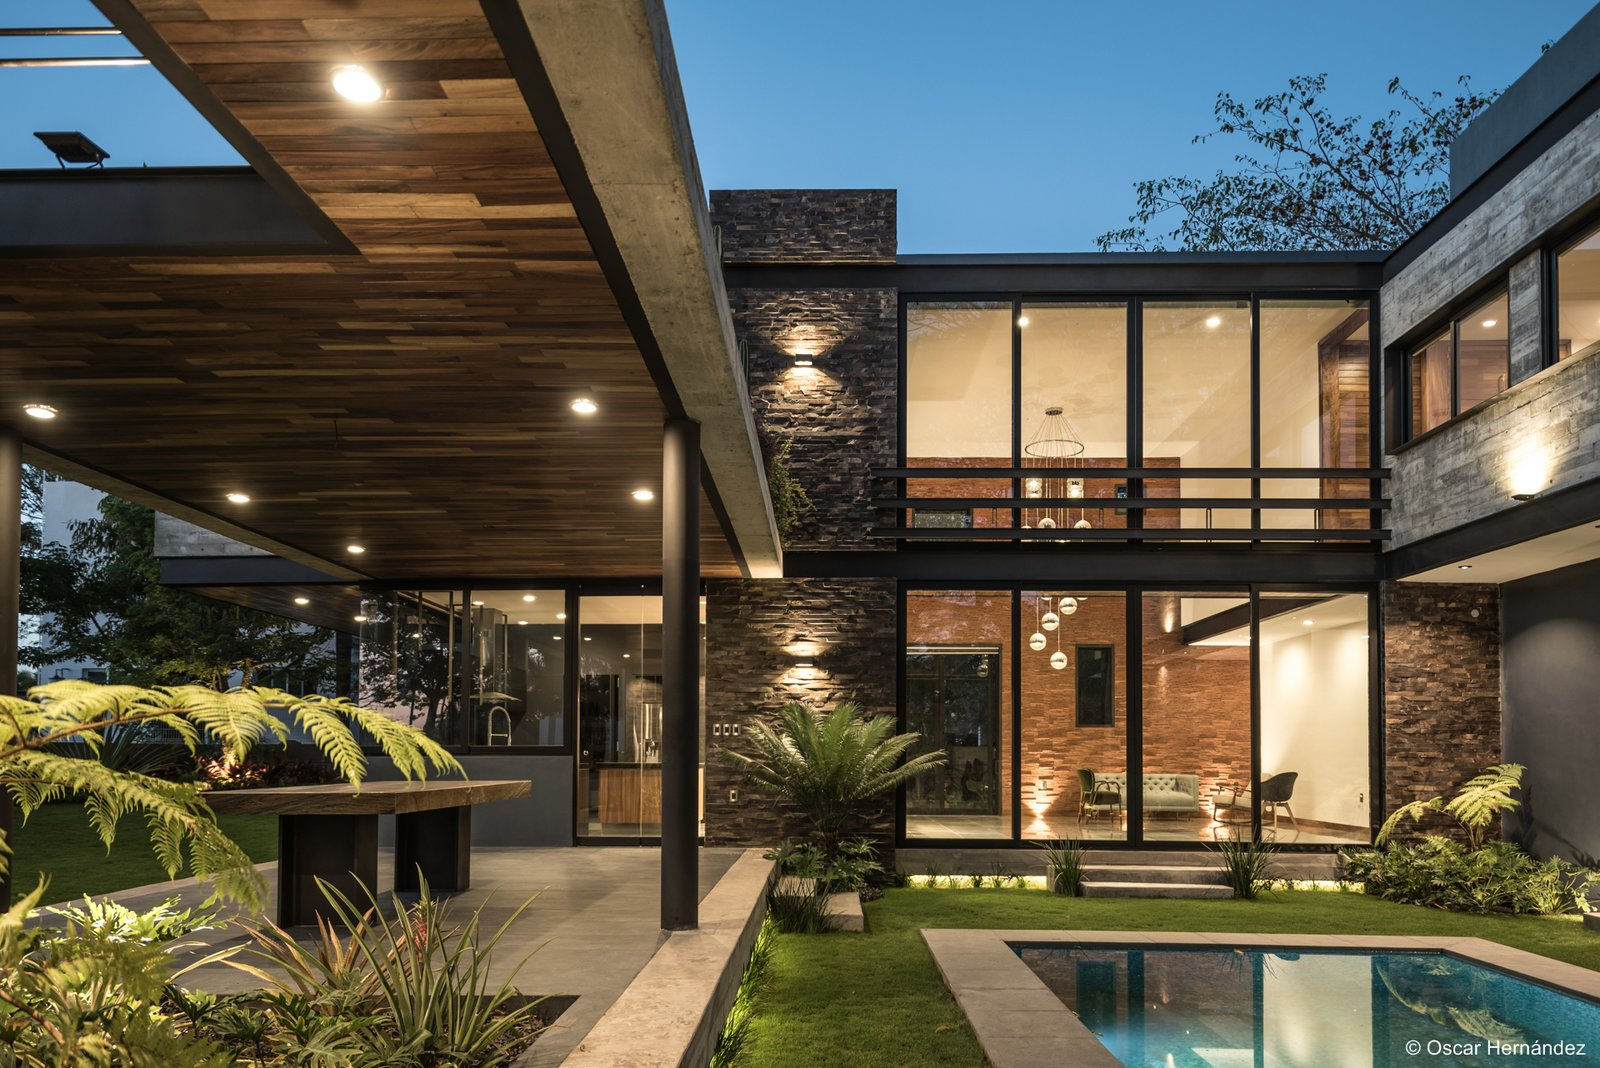 The pool view  Casa Kalyvas by Taller de Arquitectura